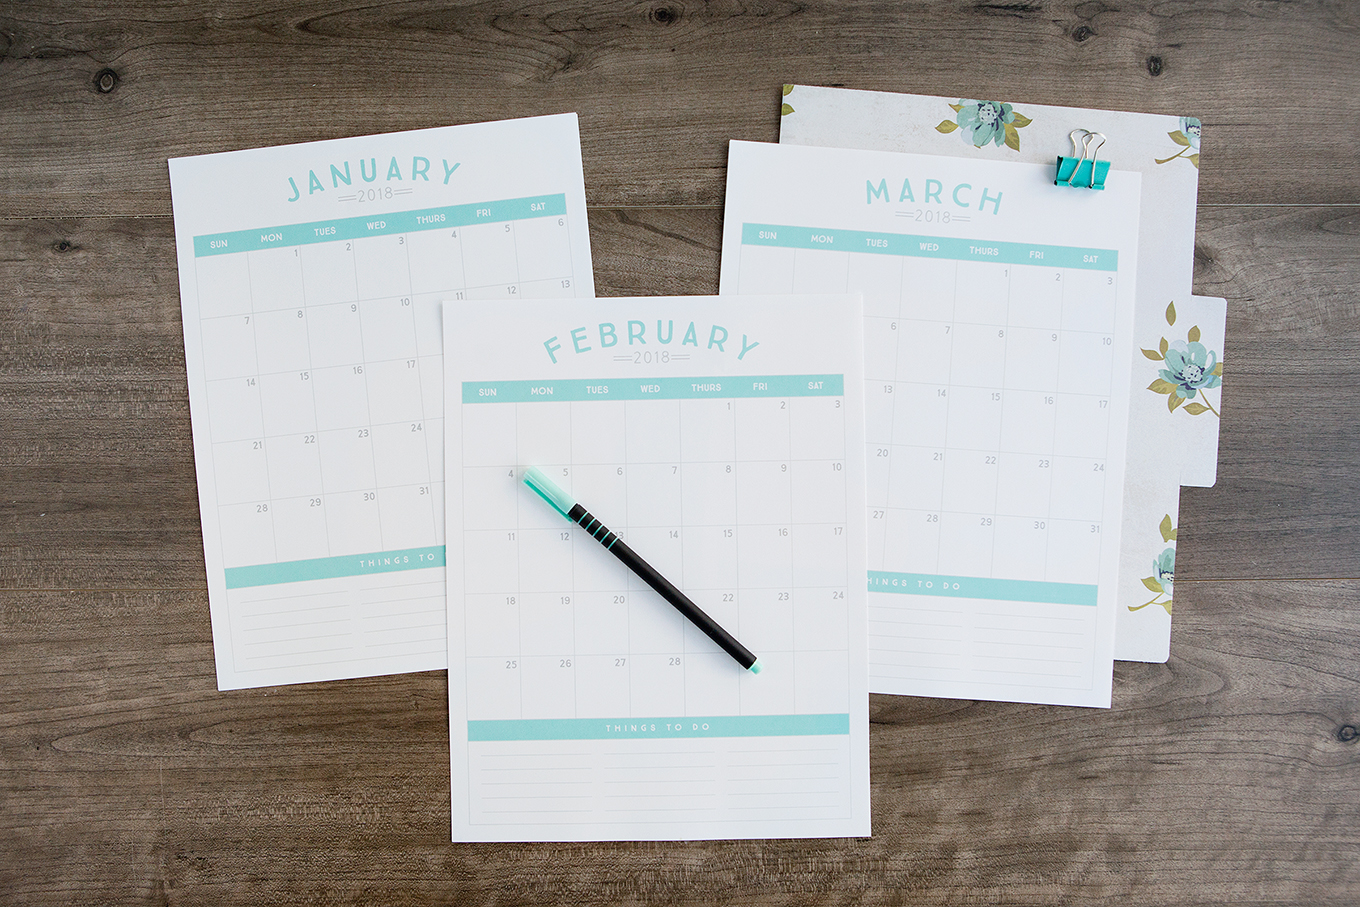 Time to get organized! FREE 2018 Printable Calendars!